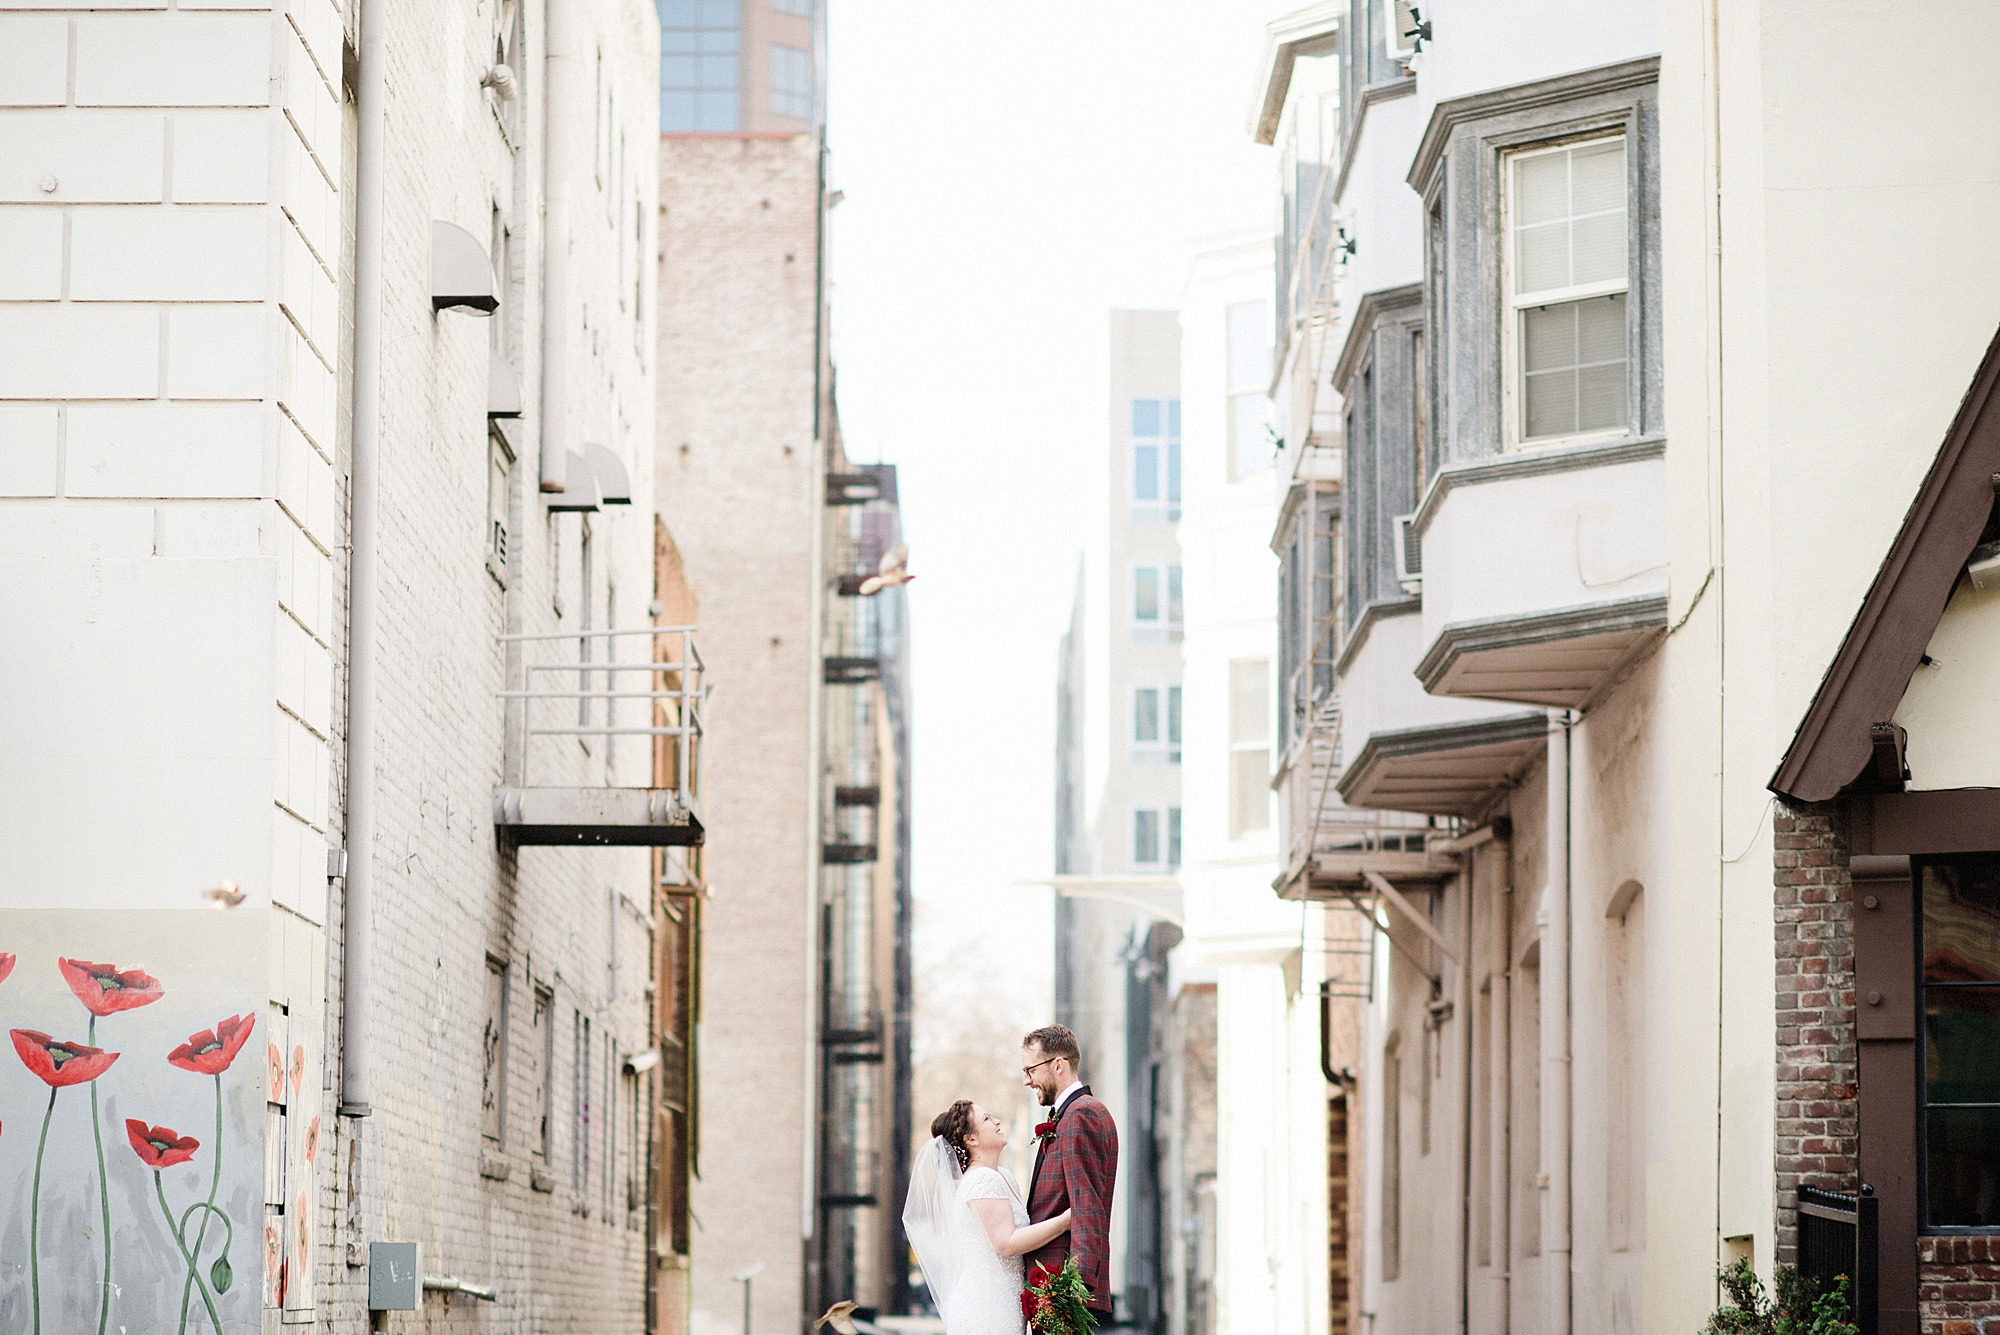 The Good Saint Urban Reserve Wedding - Sarah Maren Photography